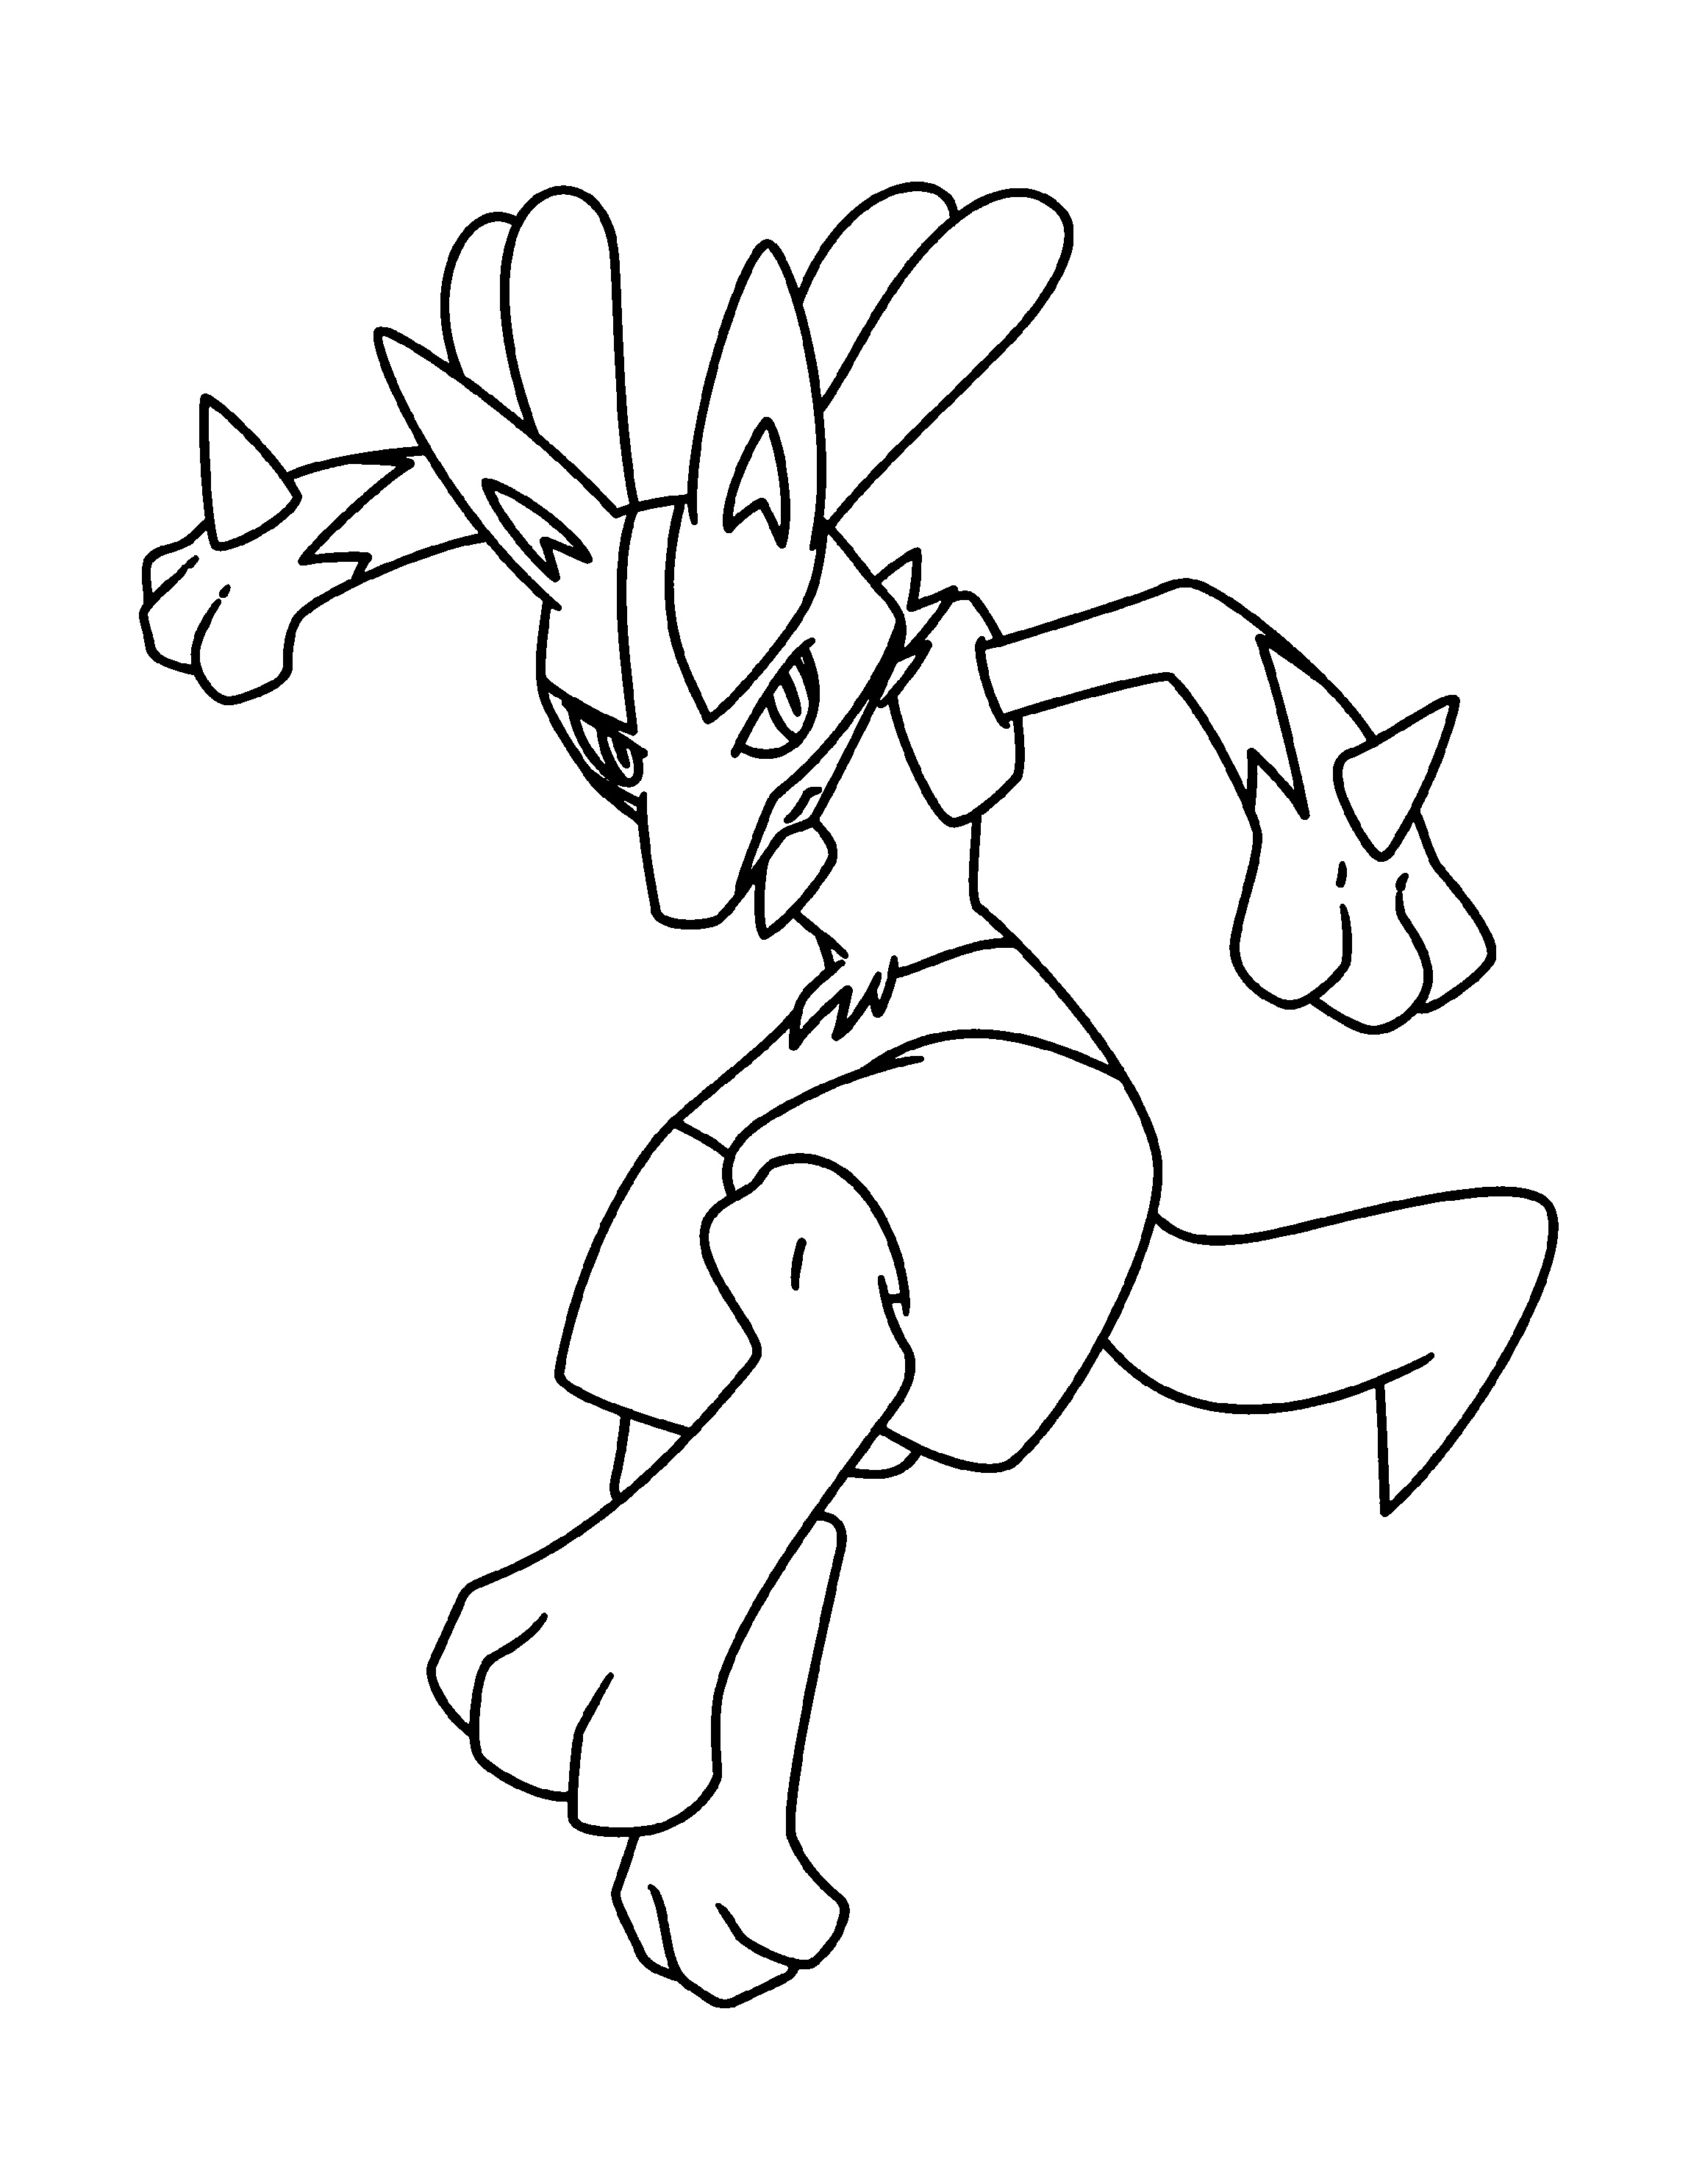 Lucario Coloring Page Free